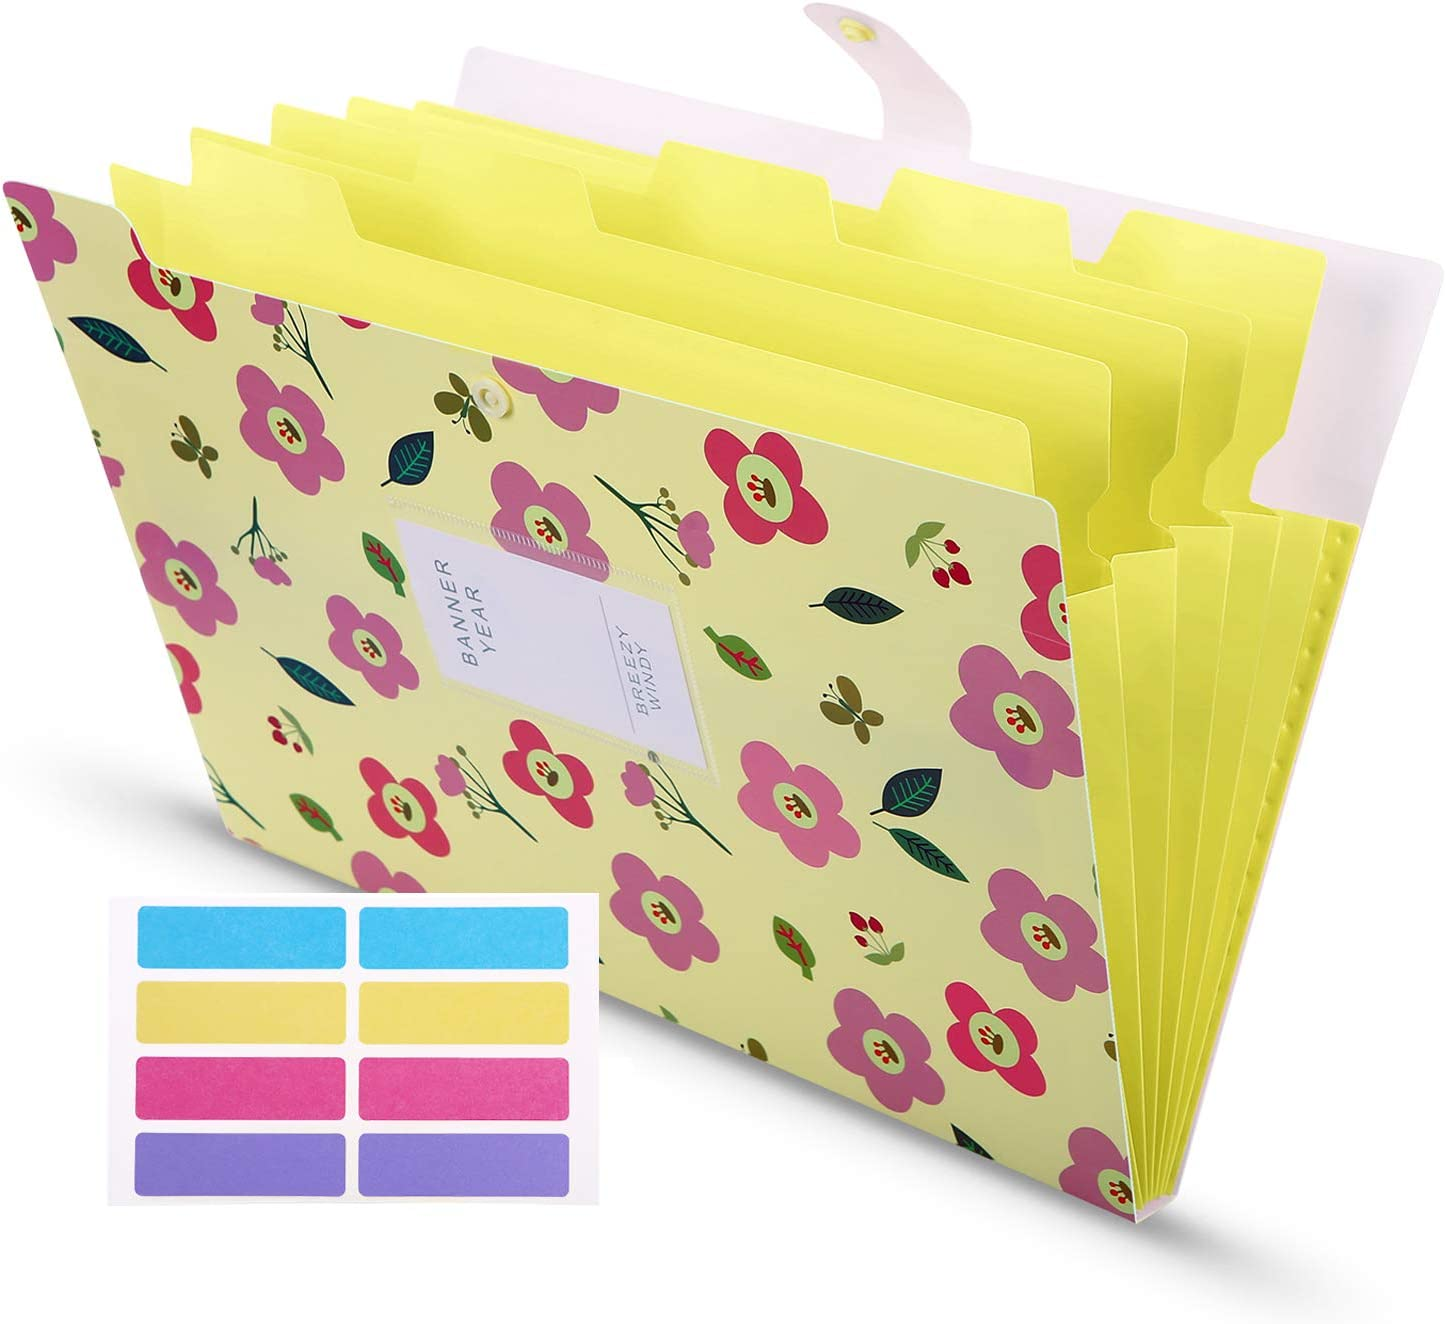 Skydue Floral Printed Accordion Document with 8 Lables, File Folder Expanding Letter Organizer for School Office Home